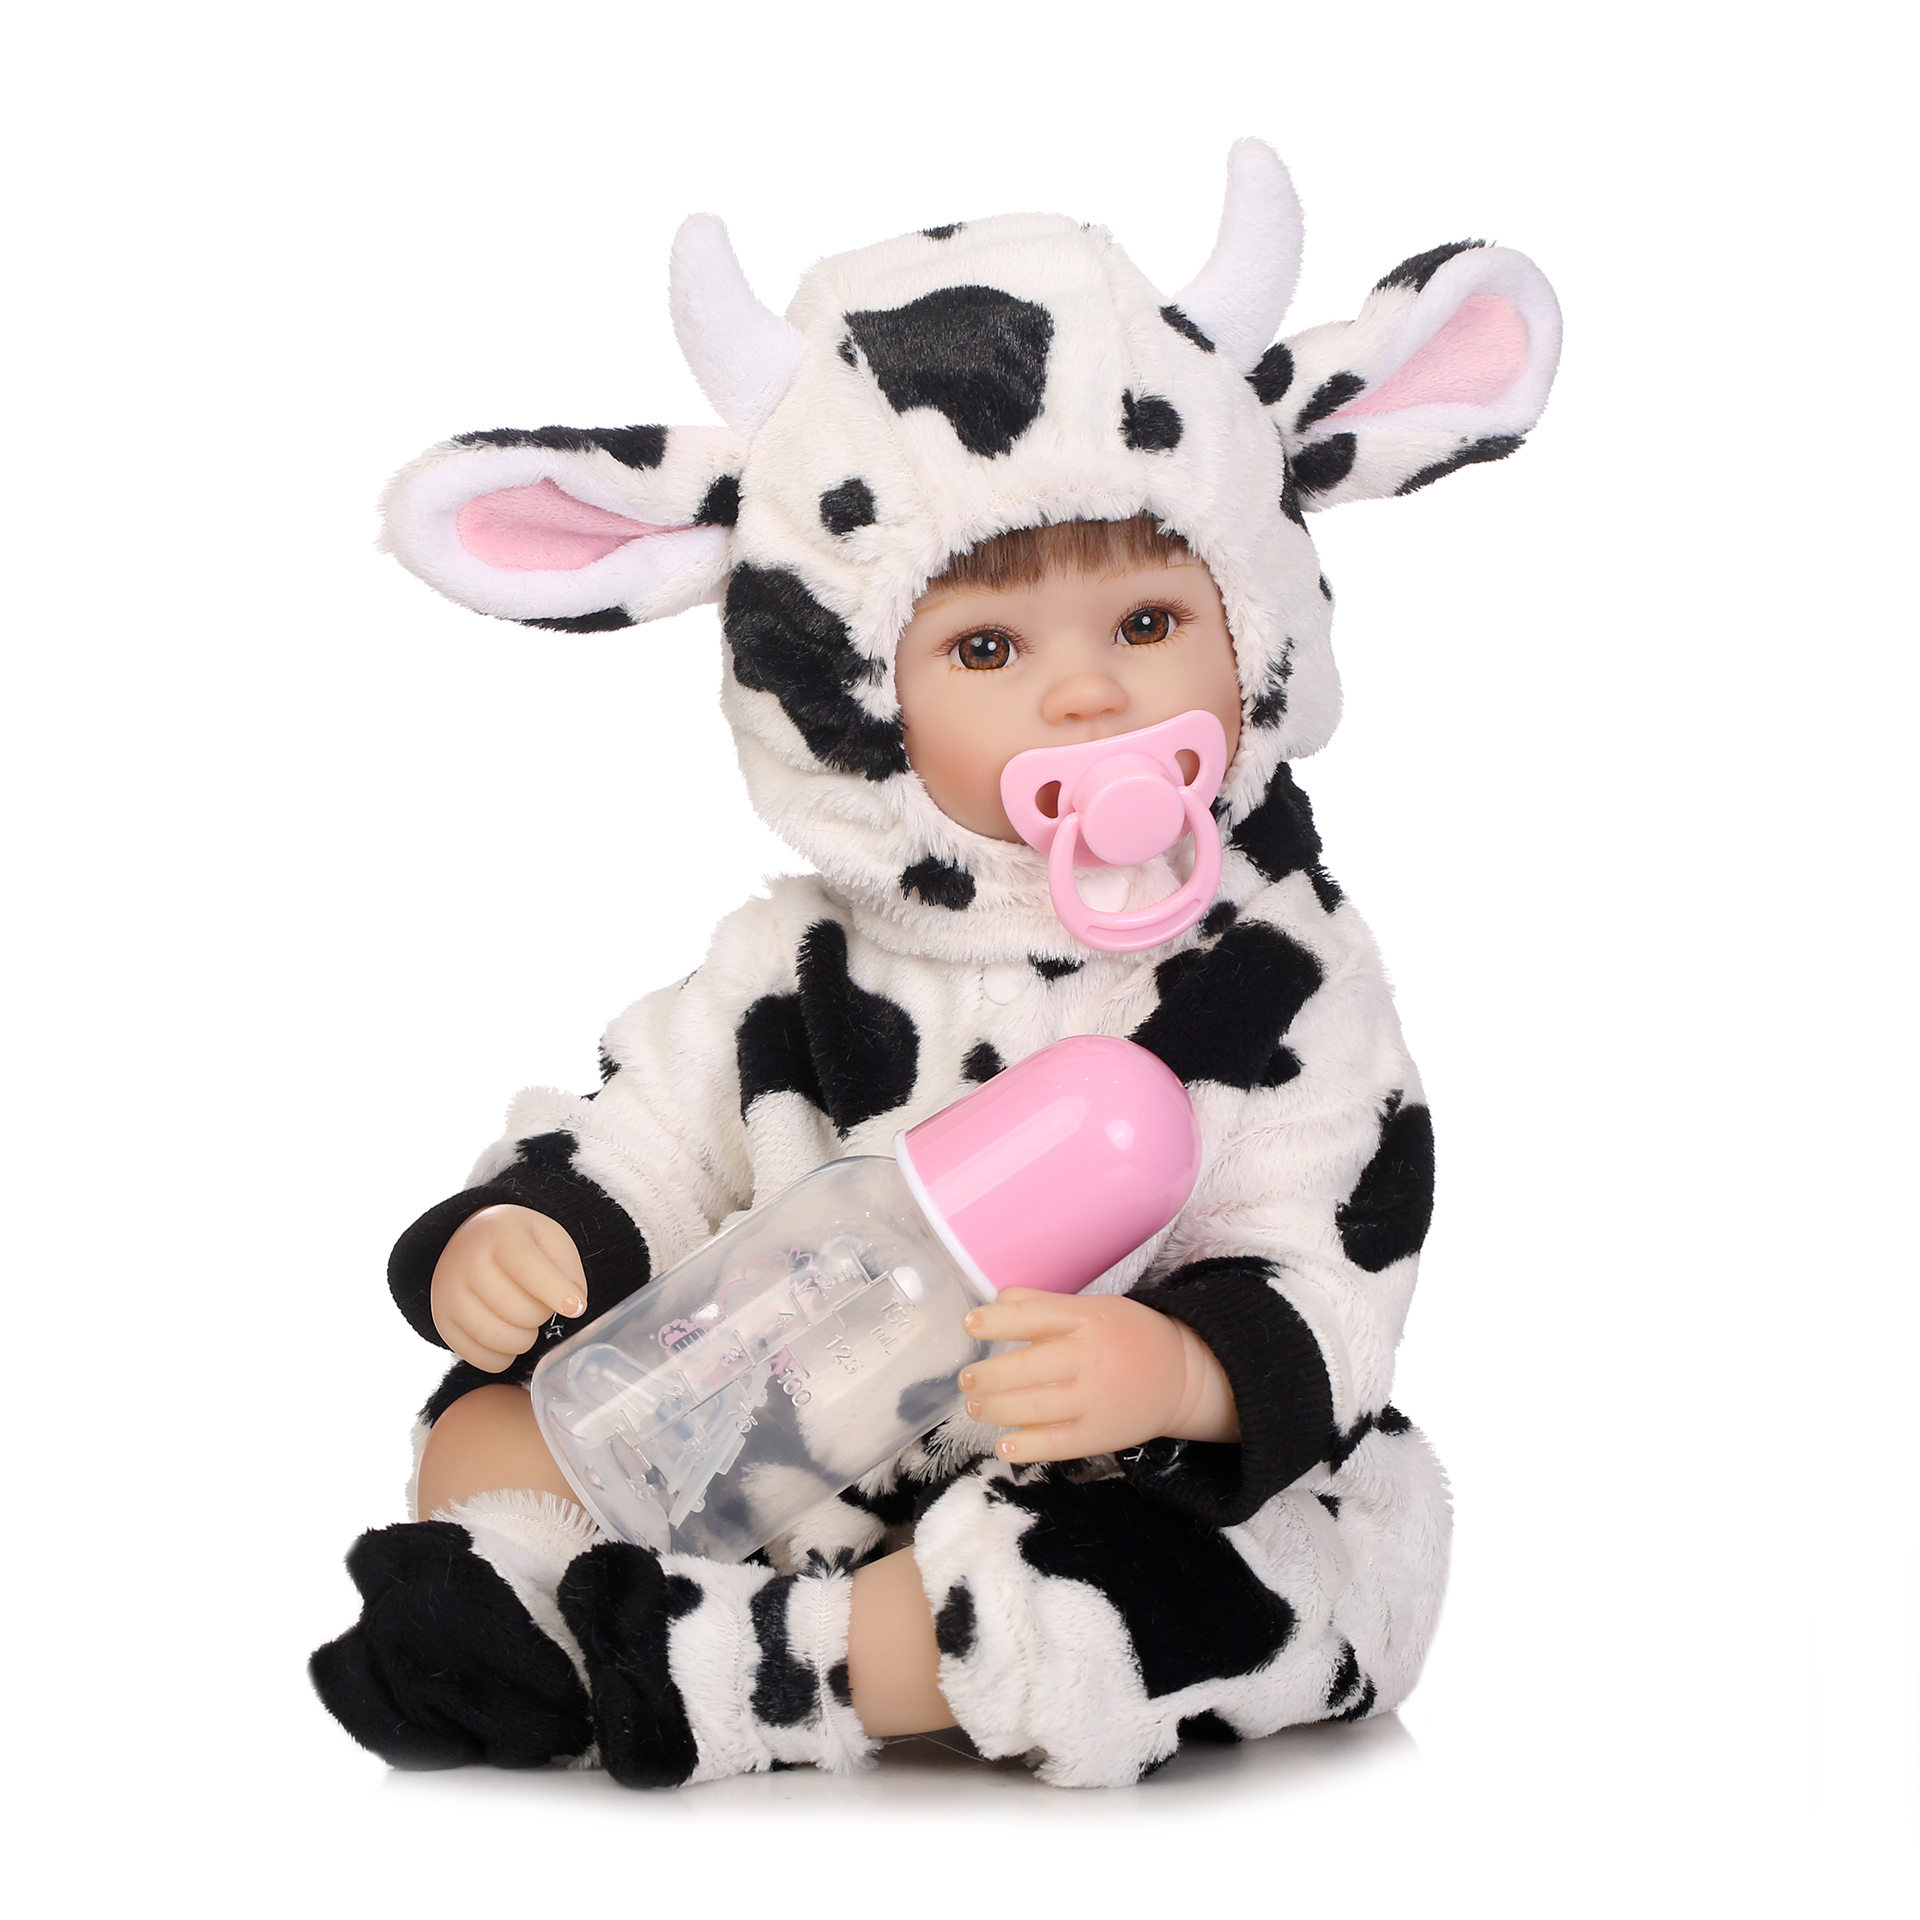 40cm Lifelike Soft Doll In Lovely Small Cow One-piece Suit Silicone Reborn Baby Doll Kids Playmate Gift For Girls Baby Playmate40cm Lifelike Soft Doll In Lovely Small Cow One-piece Suit Silicone Reborn Baby Doll Kids Playmate Gift For Girls Baby Playmate